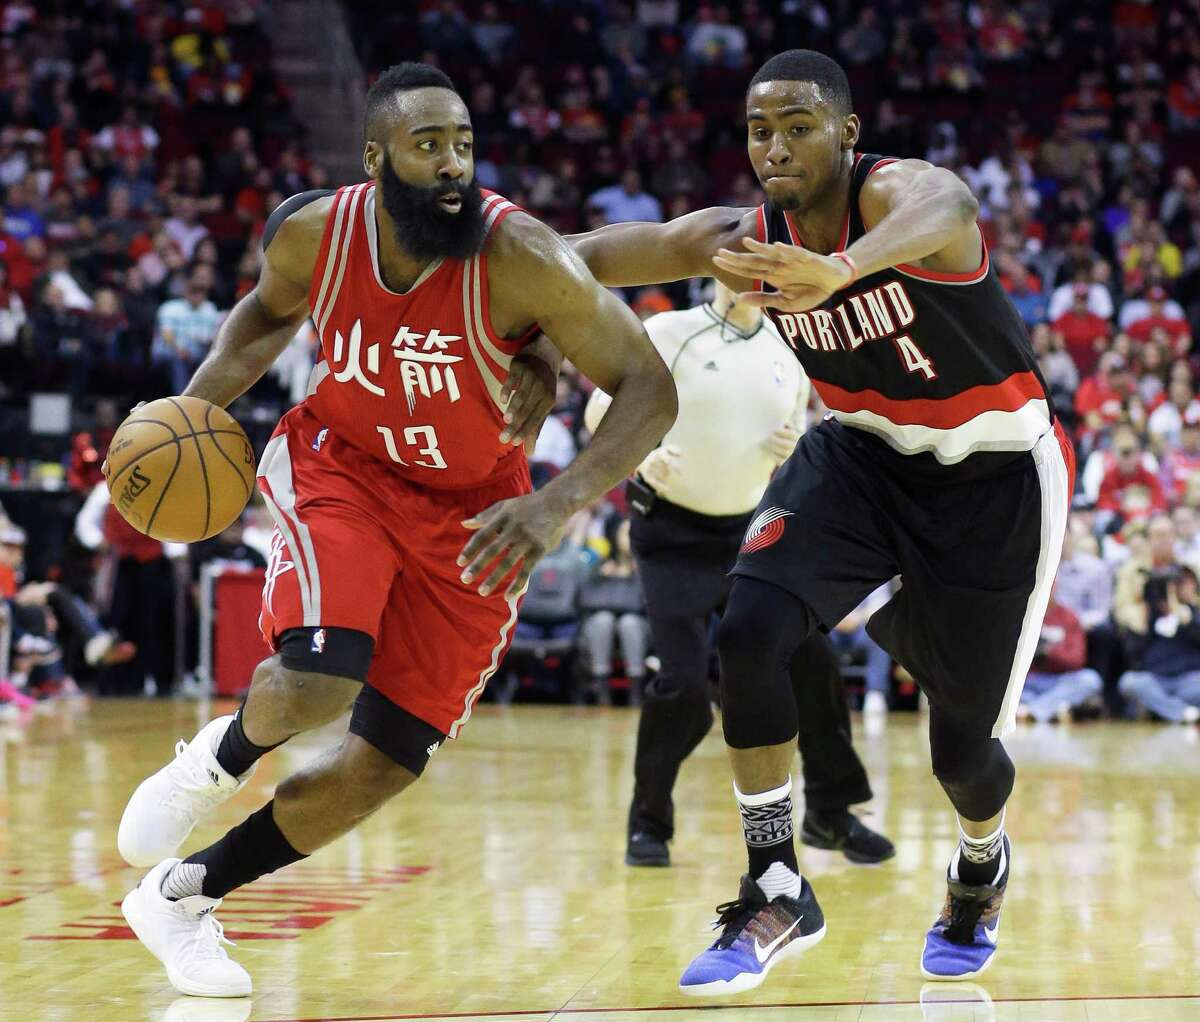 James Harden and the Rockets will look for payback Wednesday after being throttled at home Saturday by Portland.